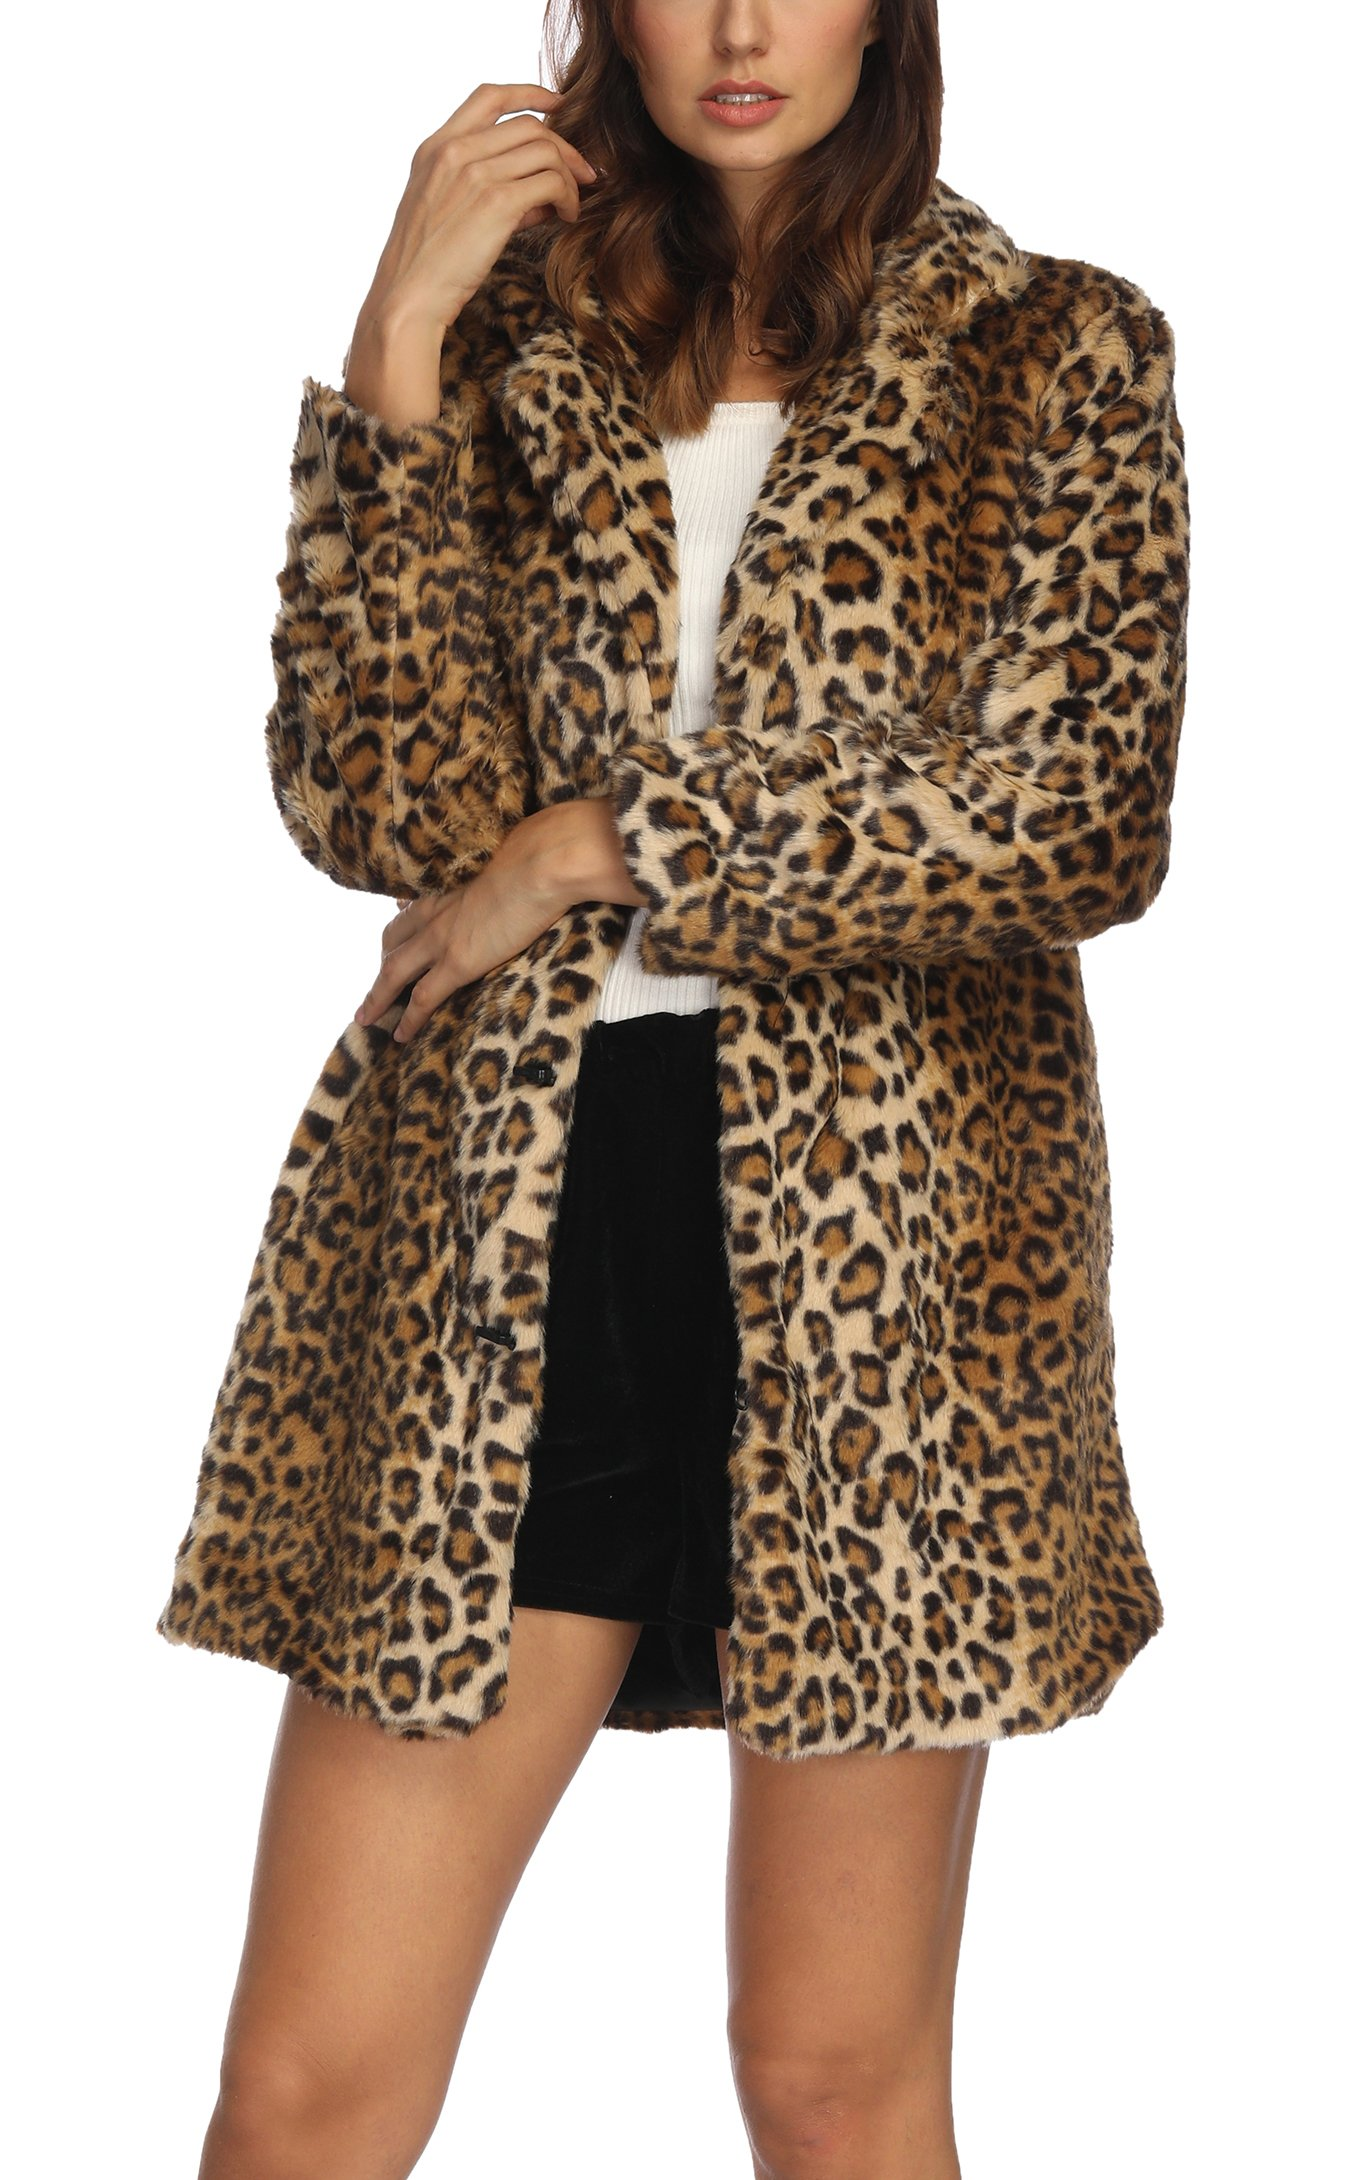 Women's Leopard Faux Fur Coat Winter Outerwear Long Sleeves Warm Jacket Sexy Lapel Overcoat,2XL Leopard